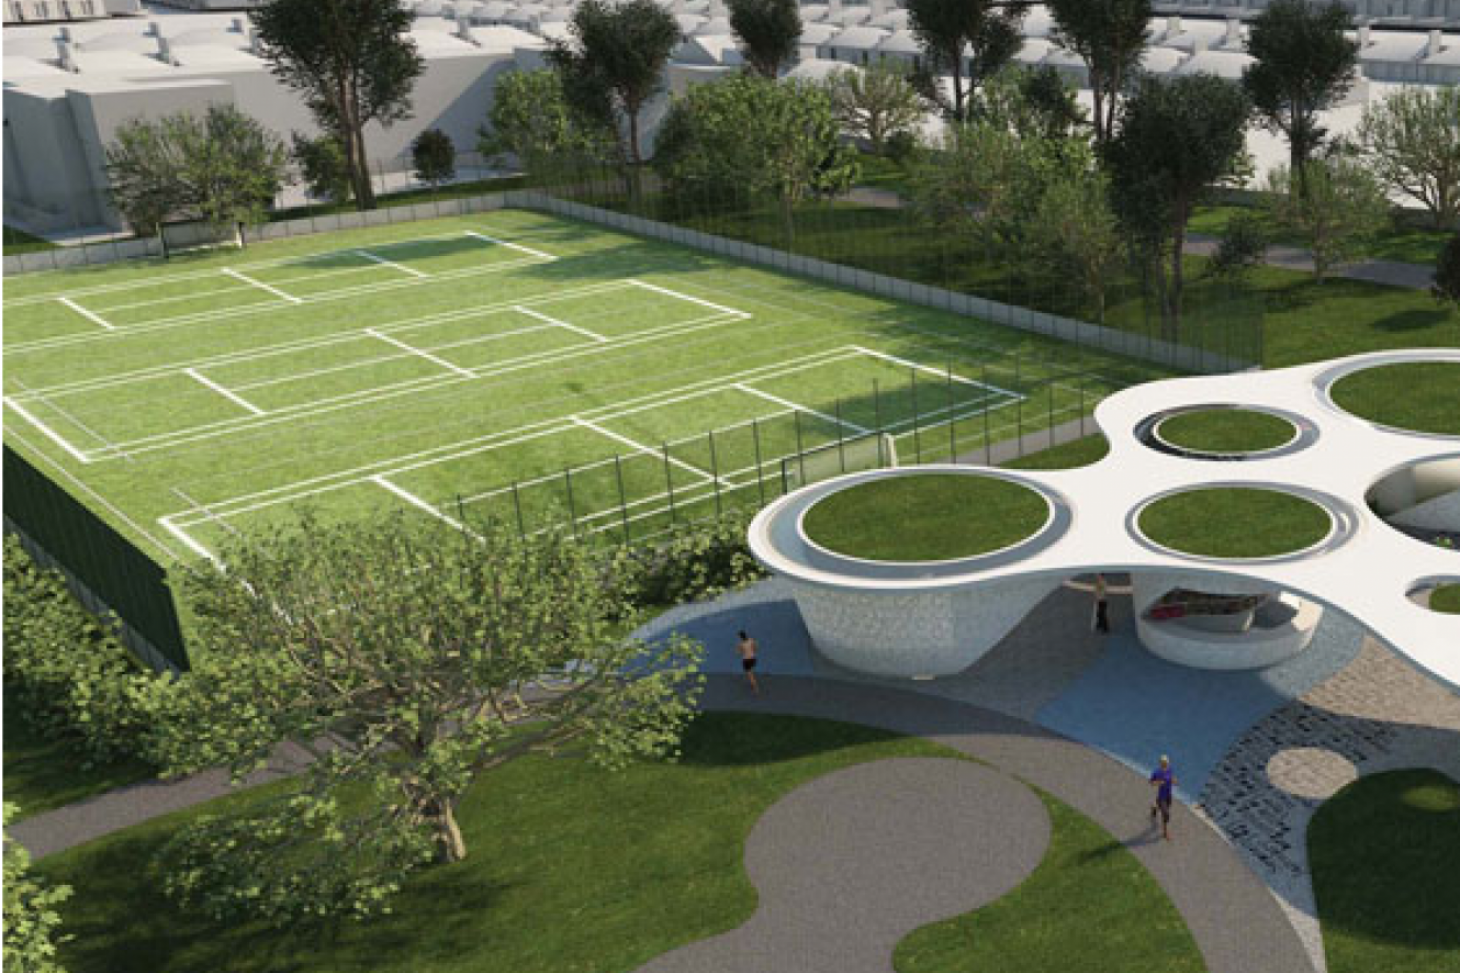 Avondale Park 5 a side | 3G Astroturf football pitch